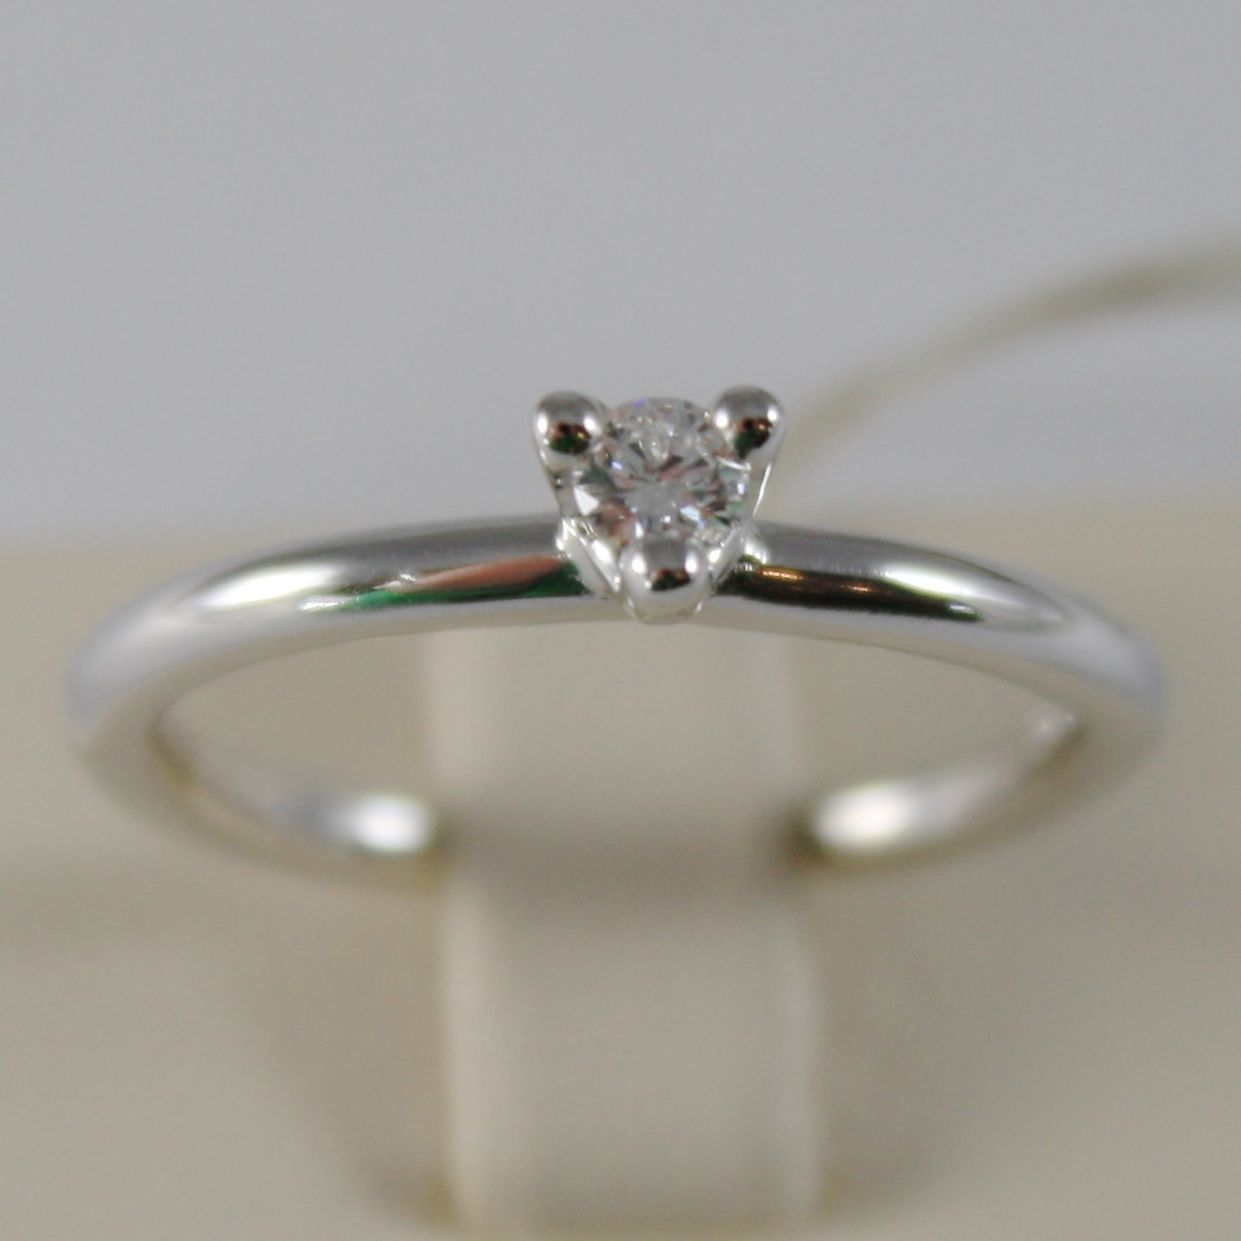 18K WHITE GOLD SOLITAIRE WEDDING BAND TRIANGLE RING DIAMOND 0.12 MADE IN ITALY